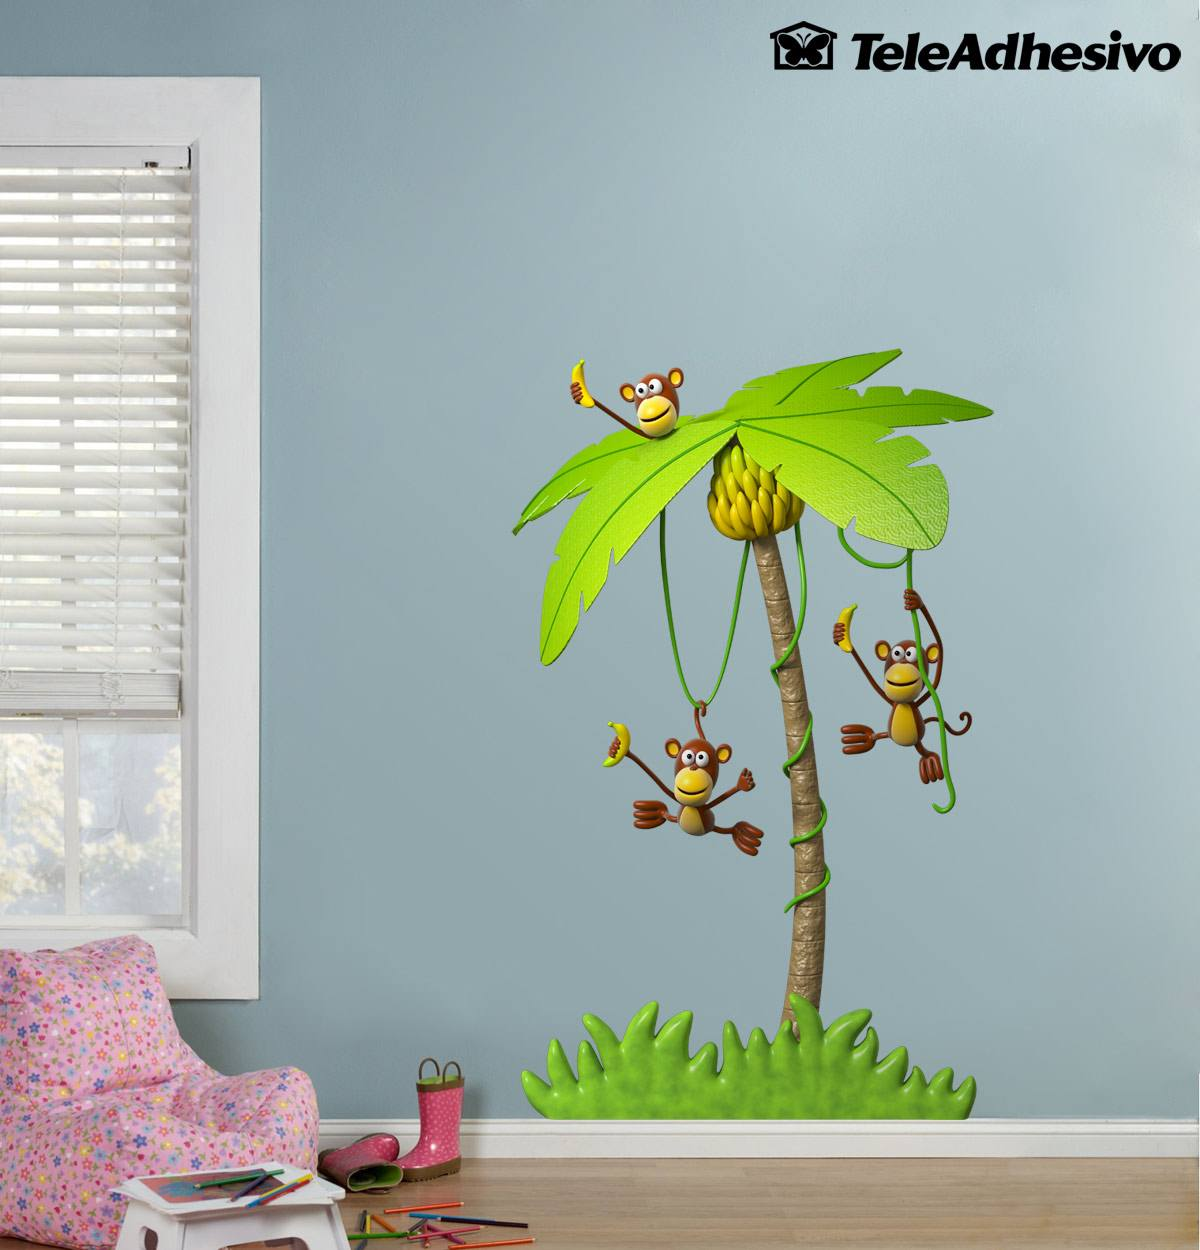 Stickers for Kids: Three monkeys in a palm tree